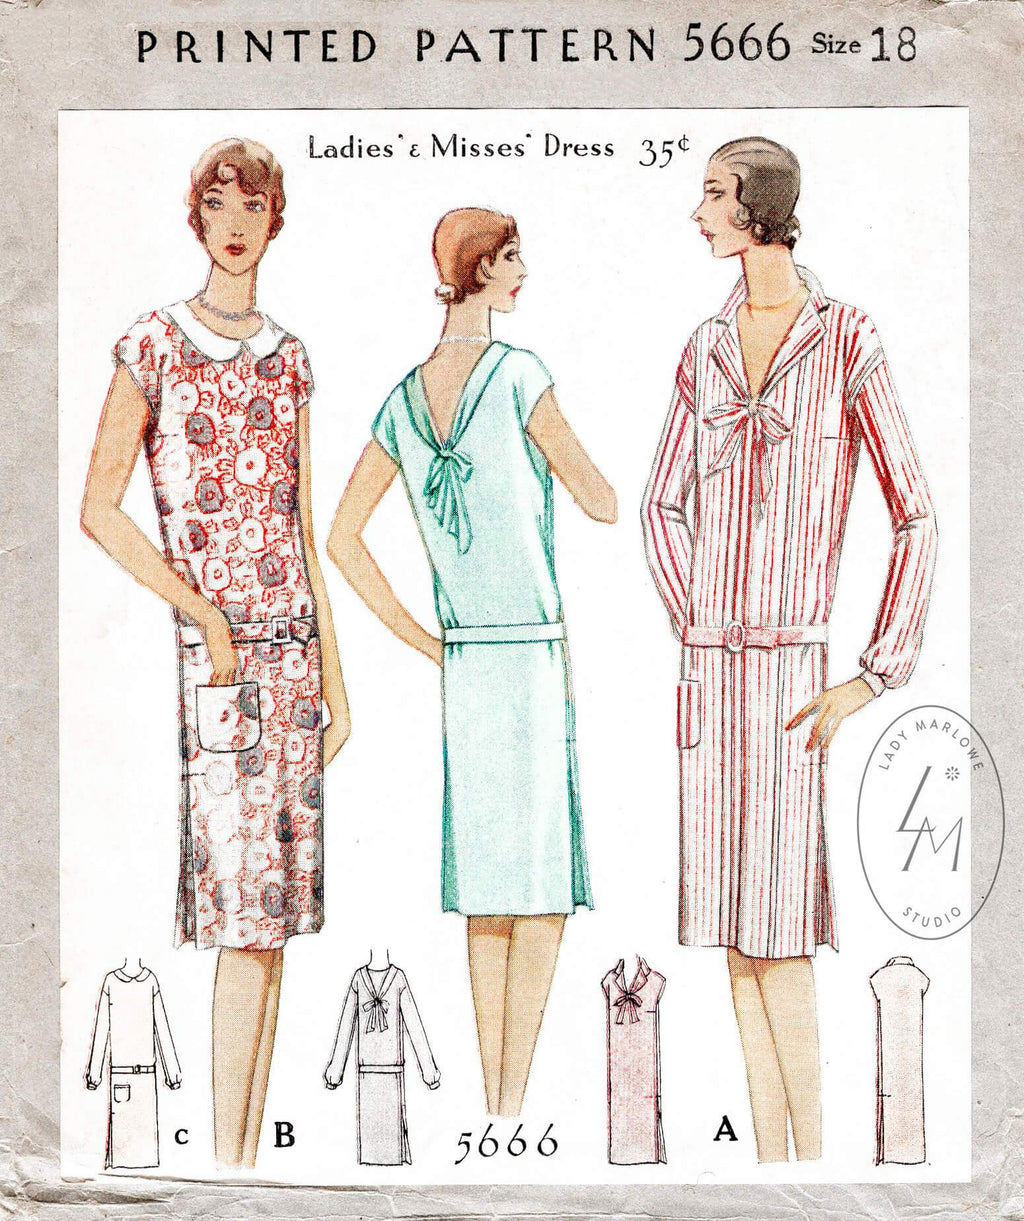 1920s 1929 drop waist dress McCall 5666 peter pan collar tie collar vintage sewing pattern reproduction